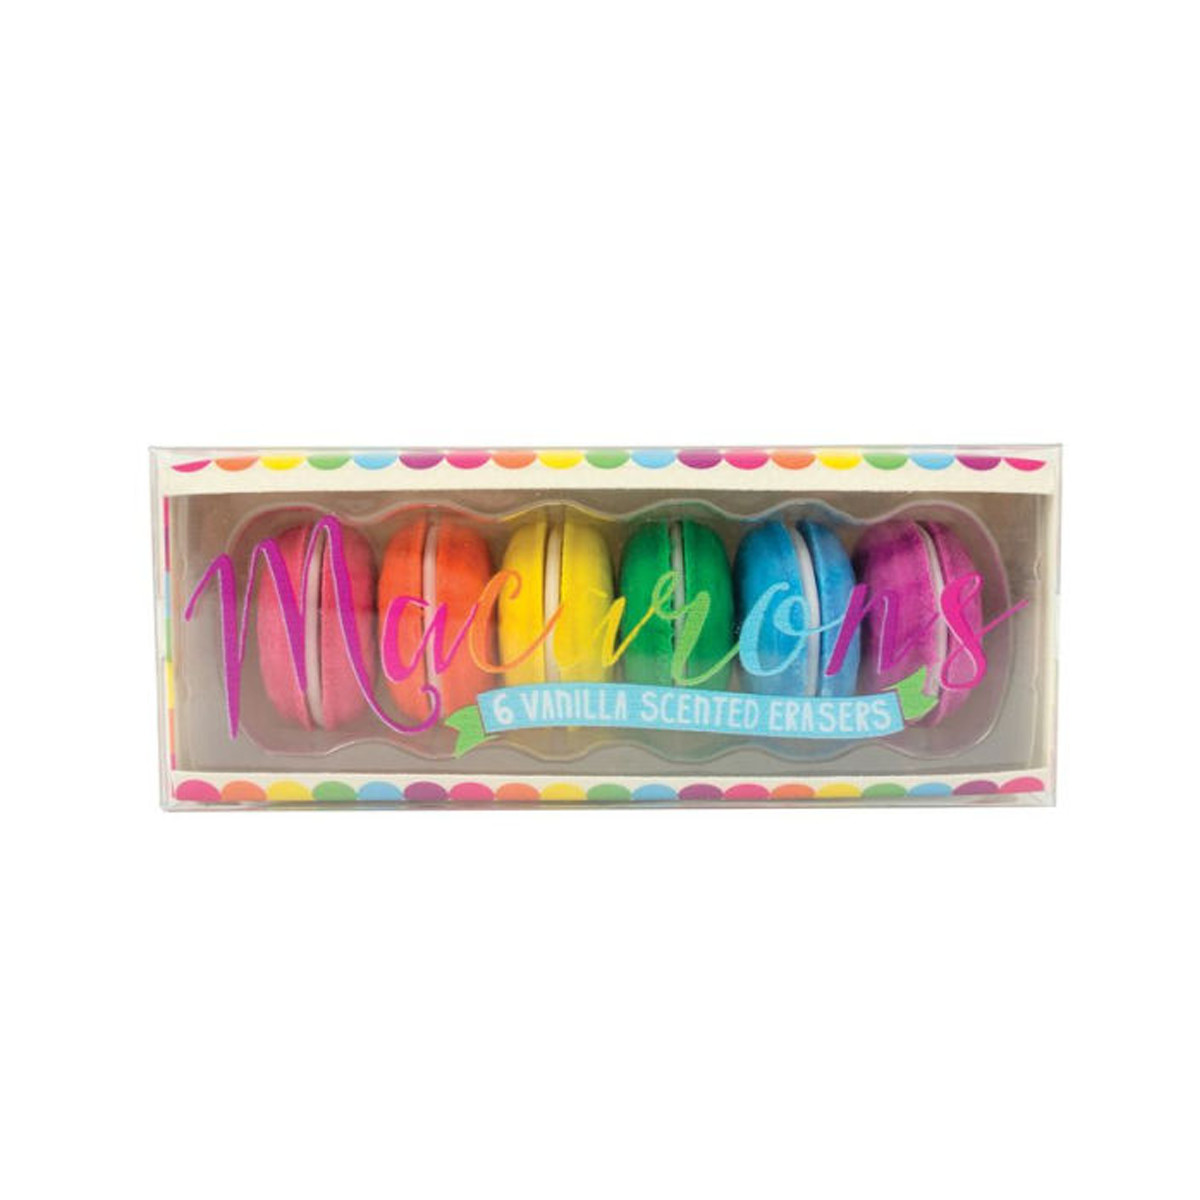 Barnes and Noble Macaron Shaped Erasers